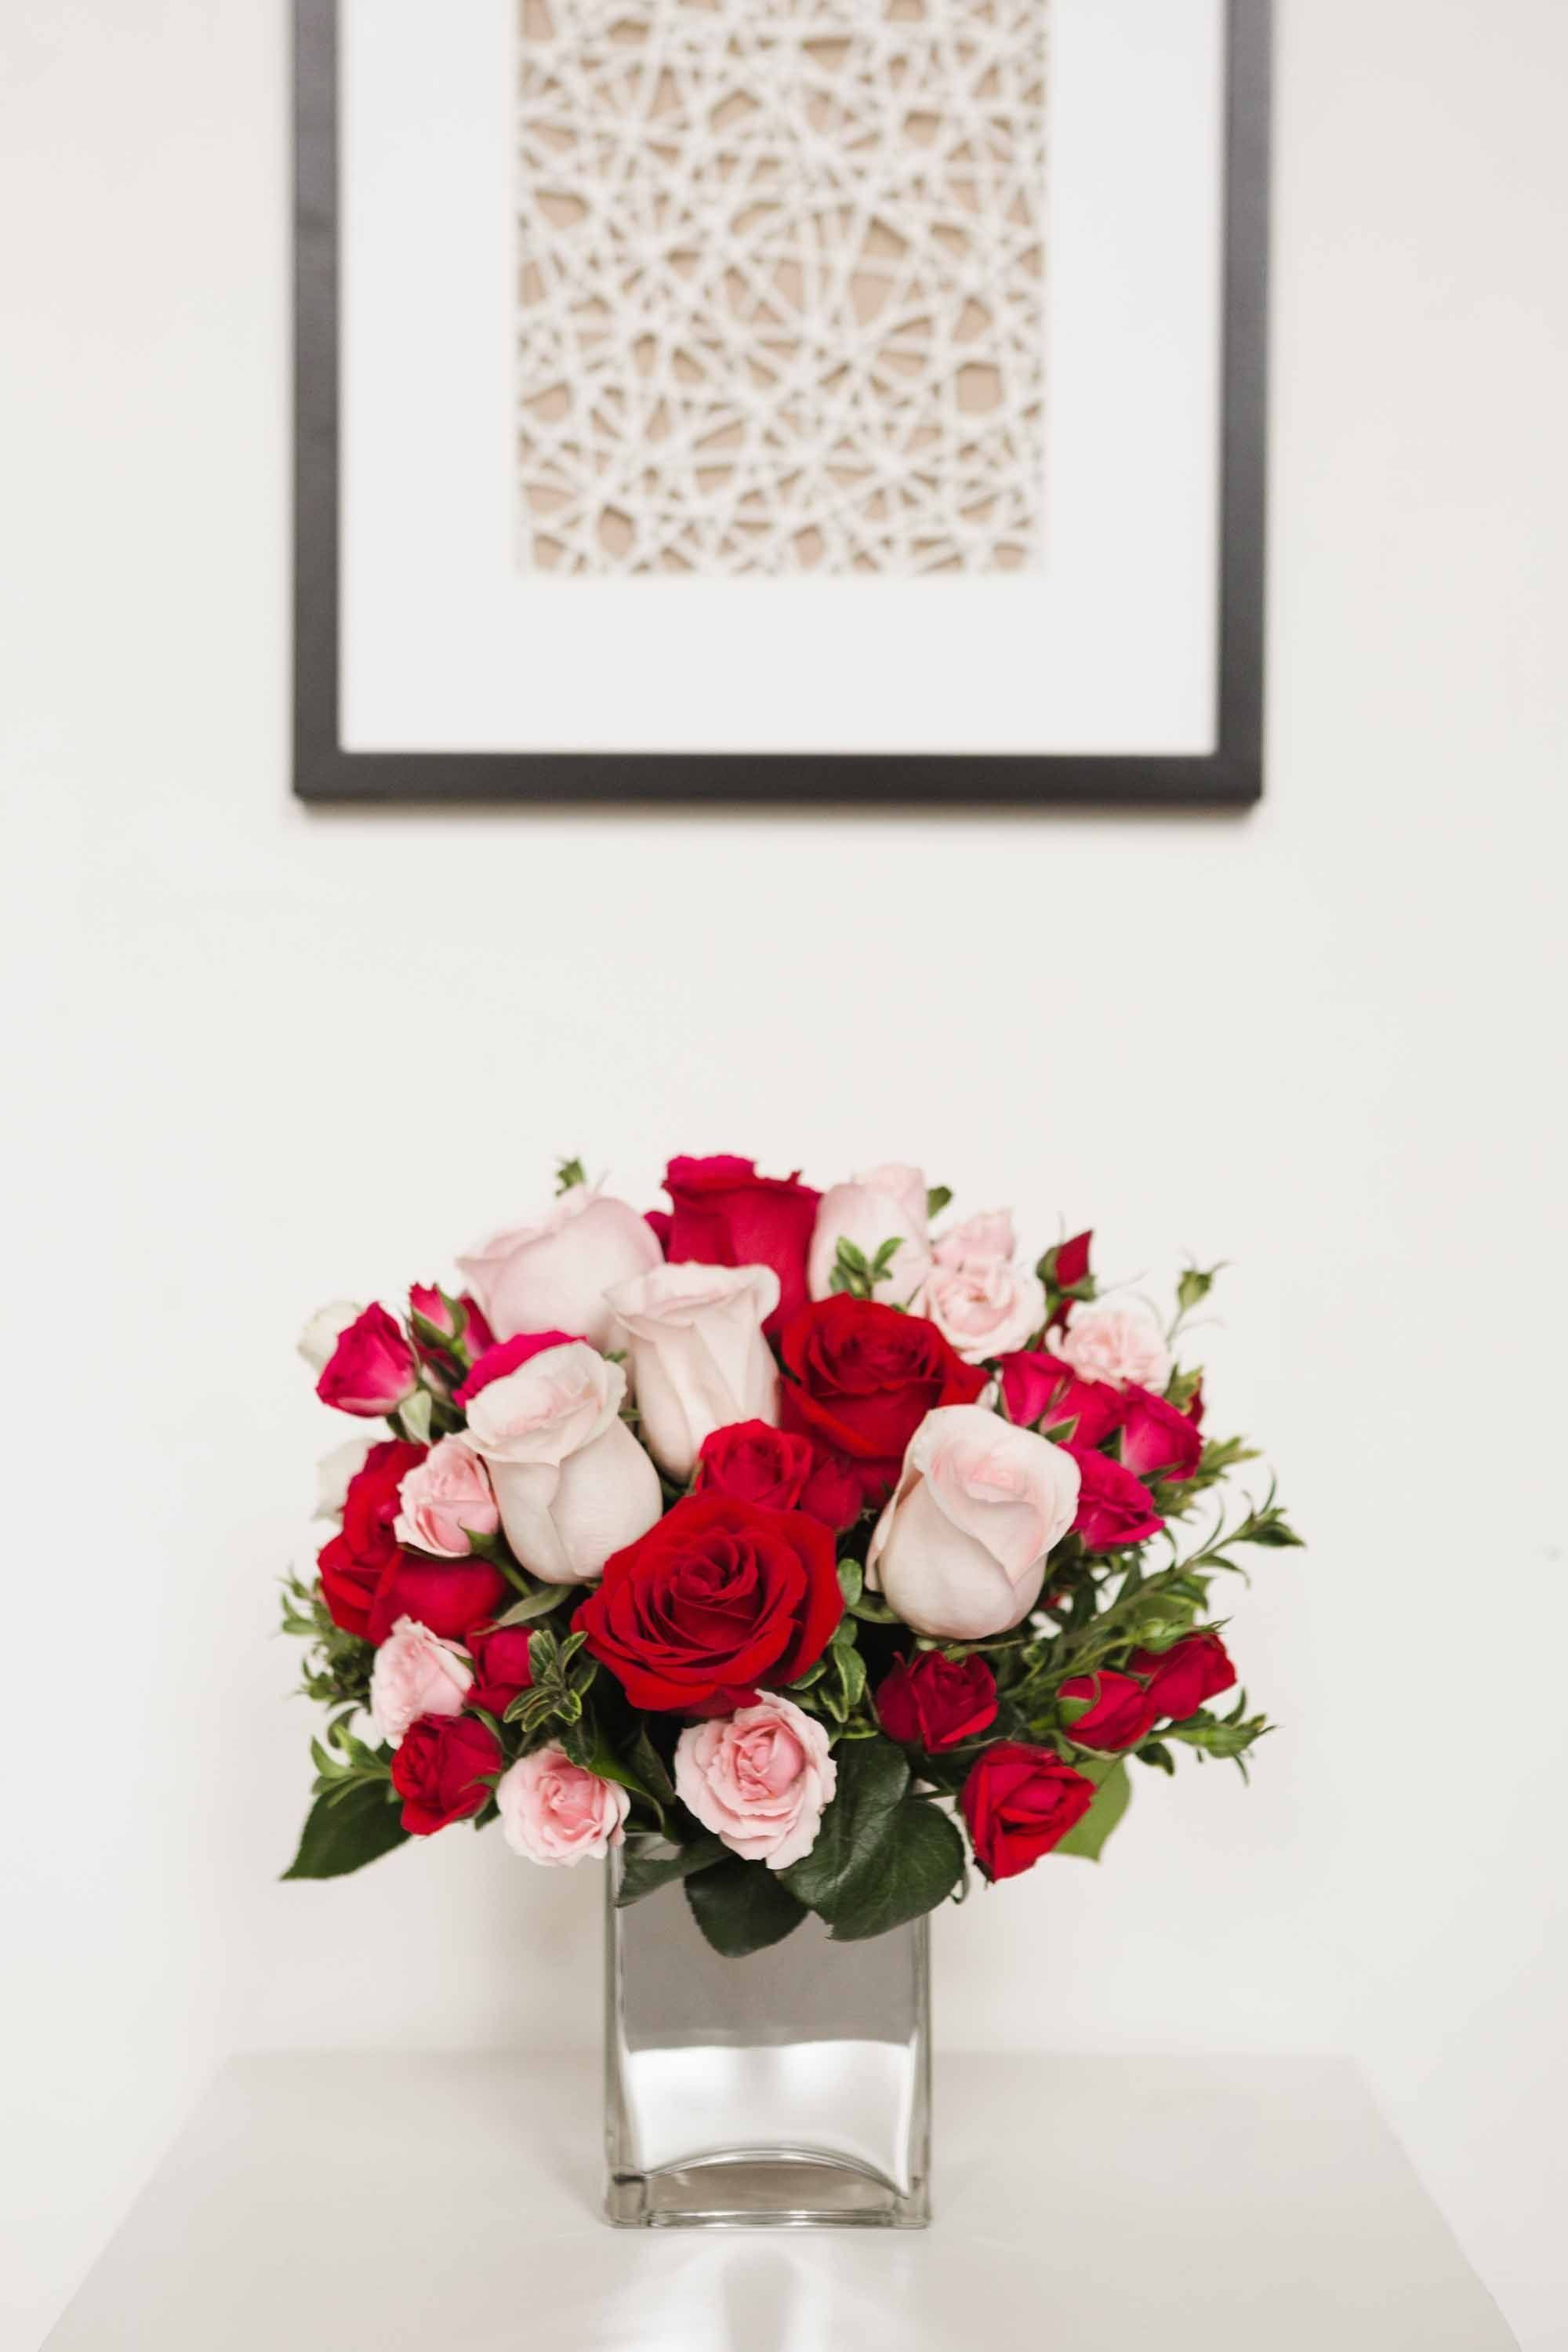 21 beautiful valentines day flowers flowers 21 beautiful valentines day flowers izmirmasajfo